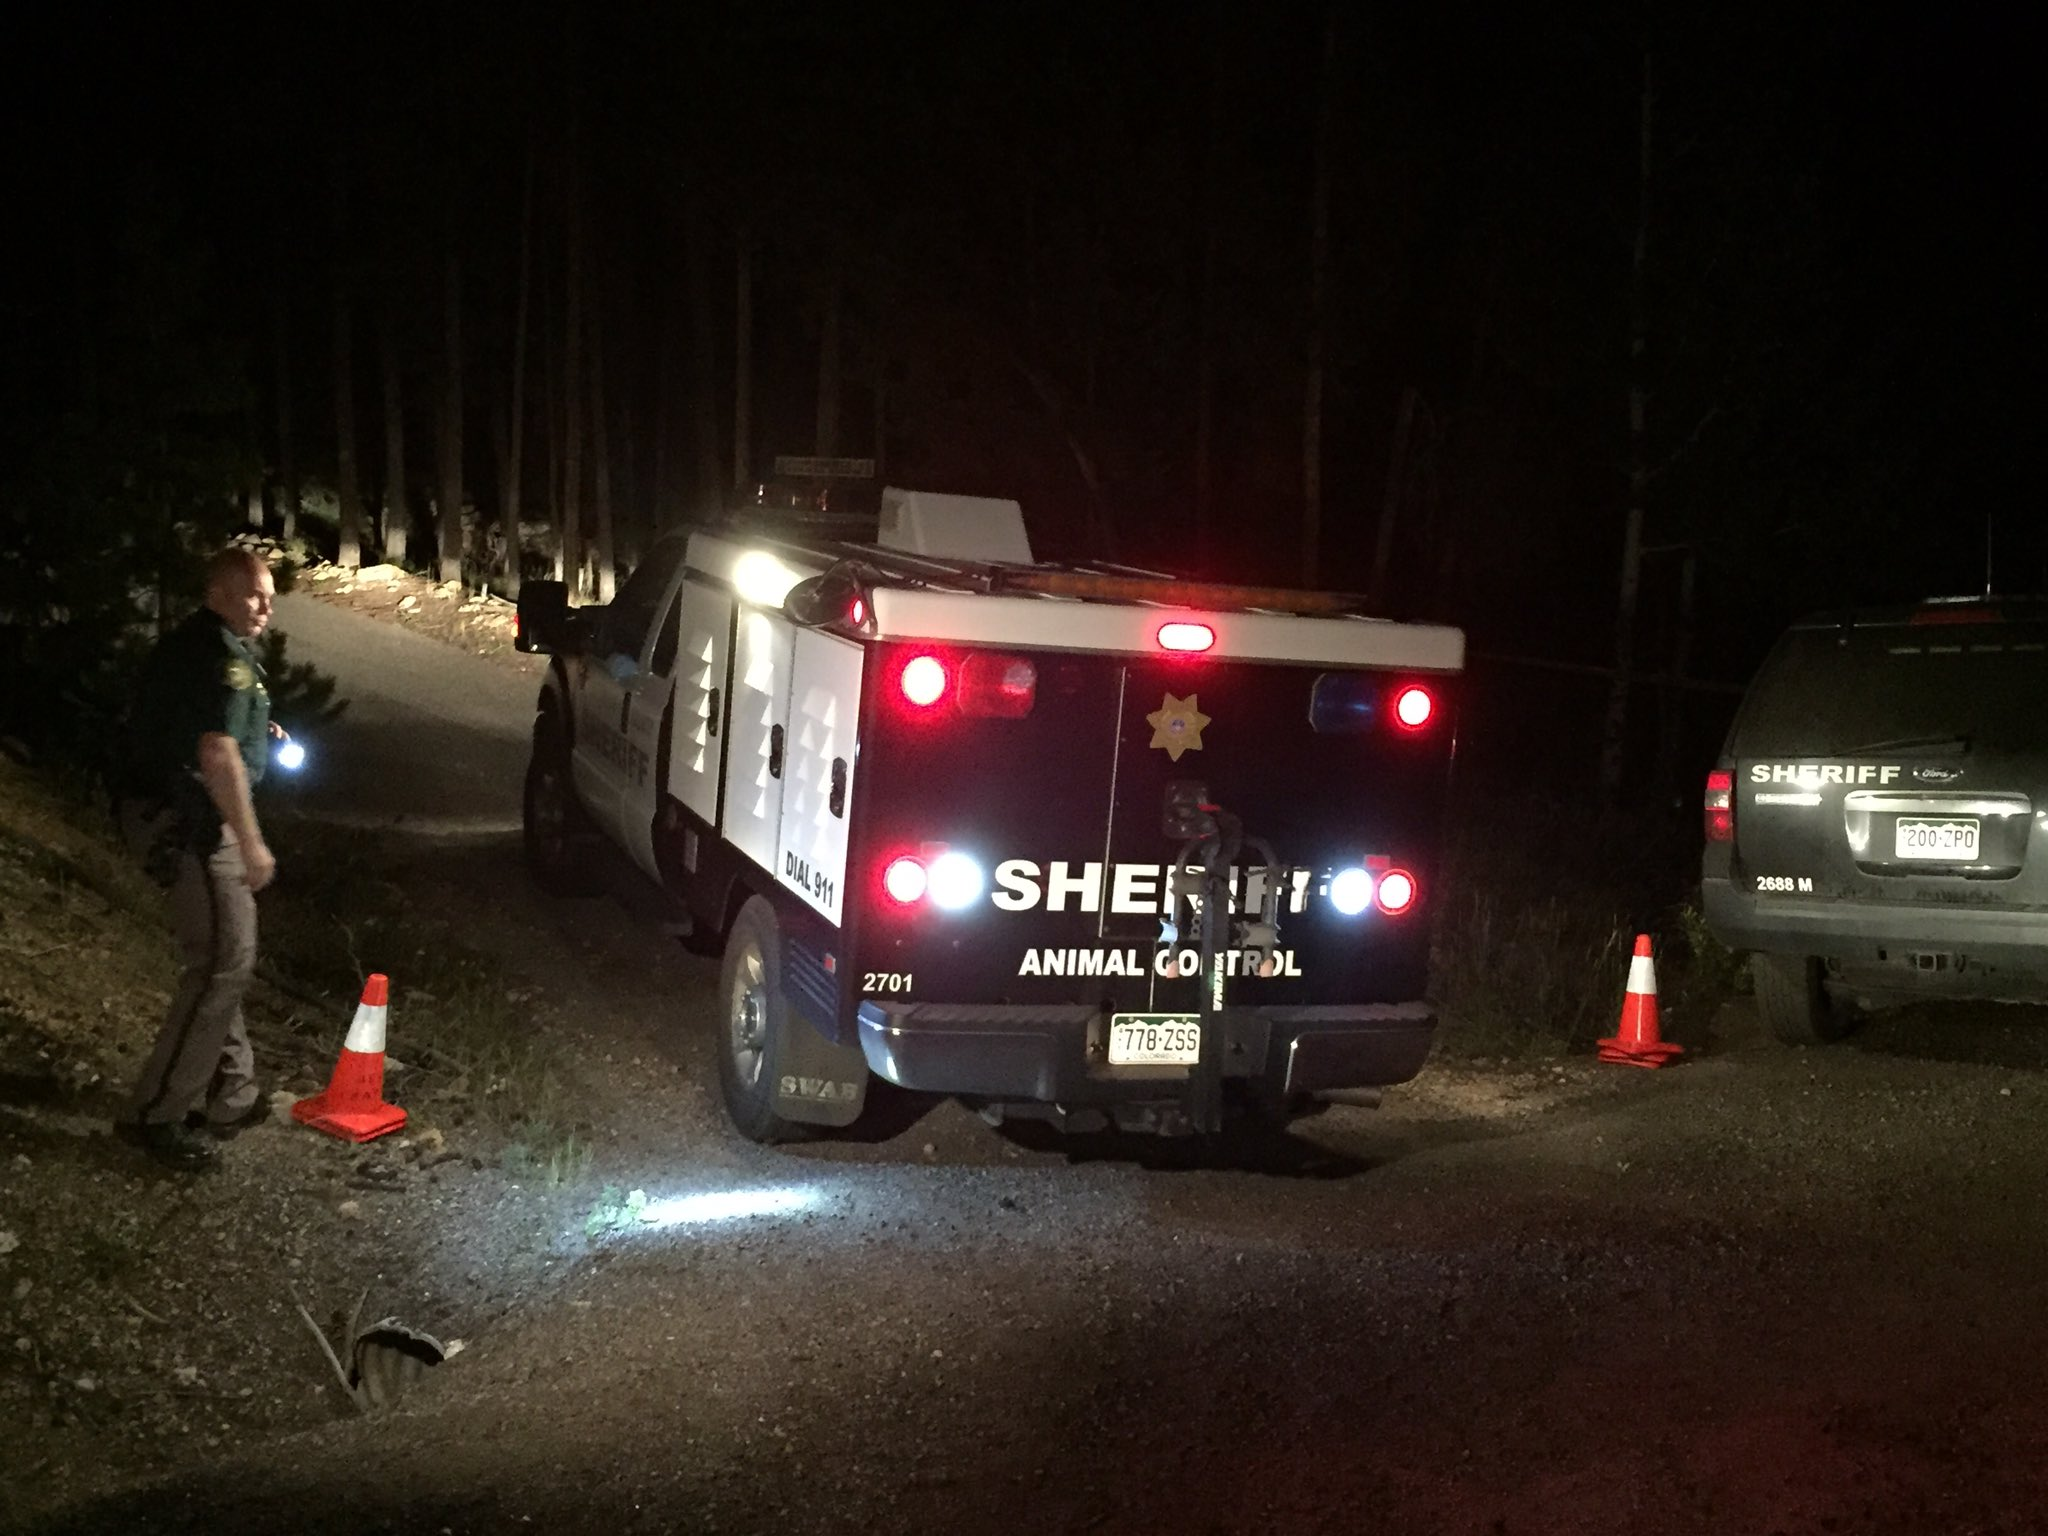 Two dogs were taken from the scene of a fatal attack in Conifer. (Jefferson County Sheriff's Office)